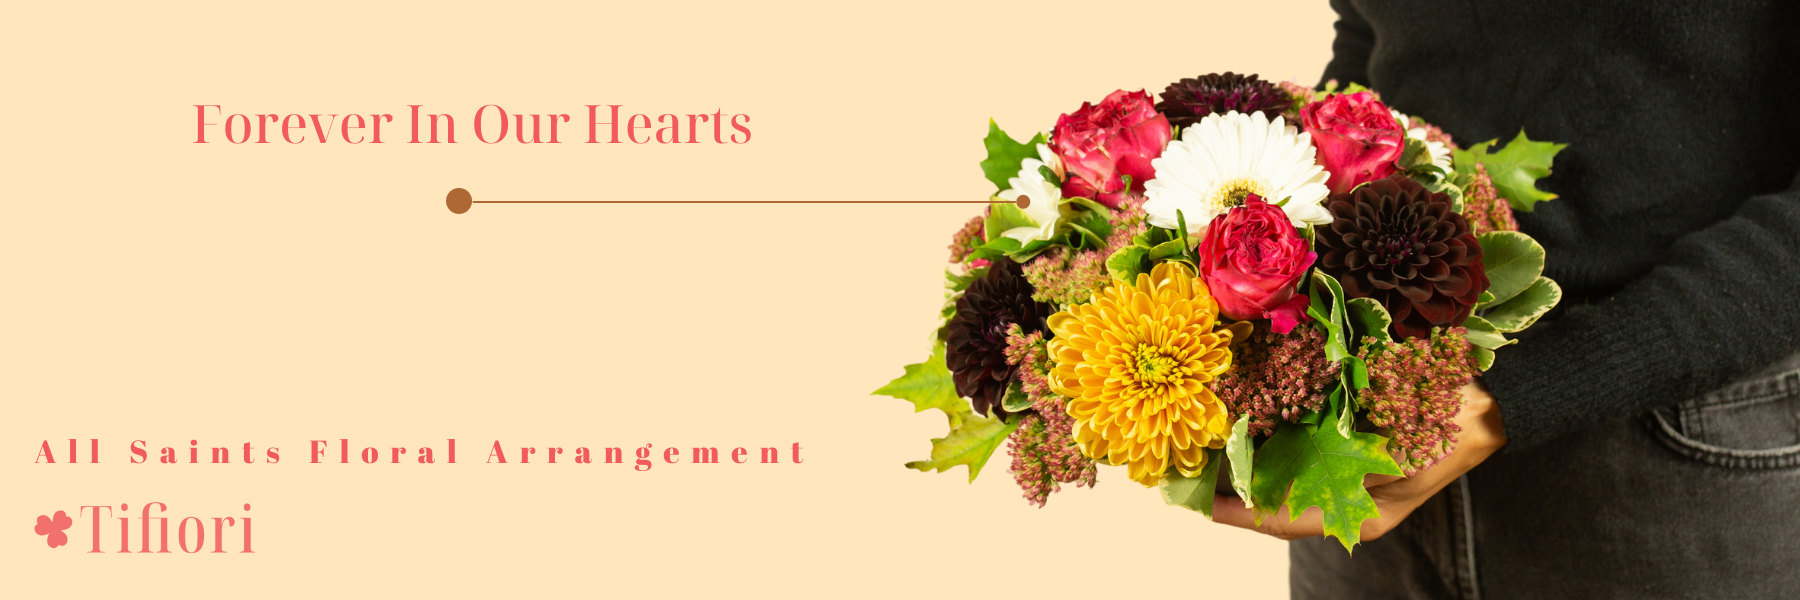 Forever In Our Hearts floral arrangement Toussaint